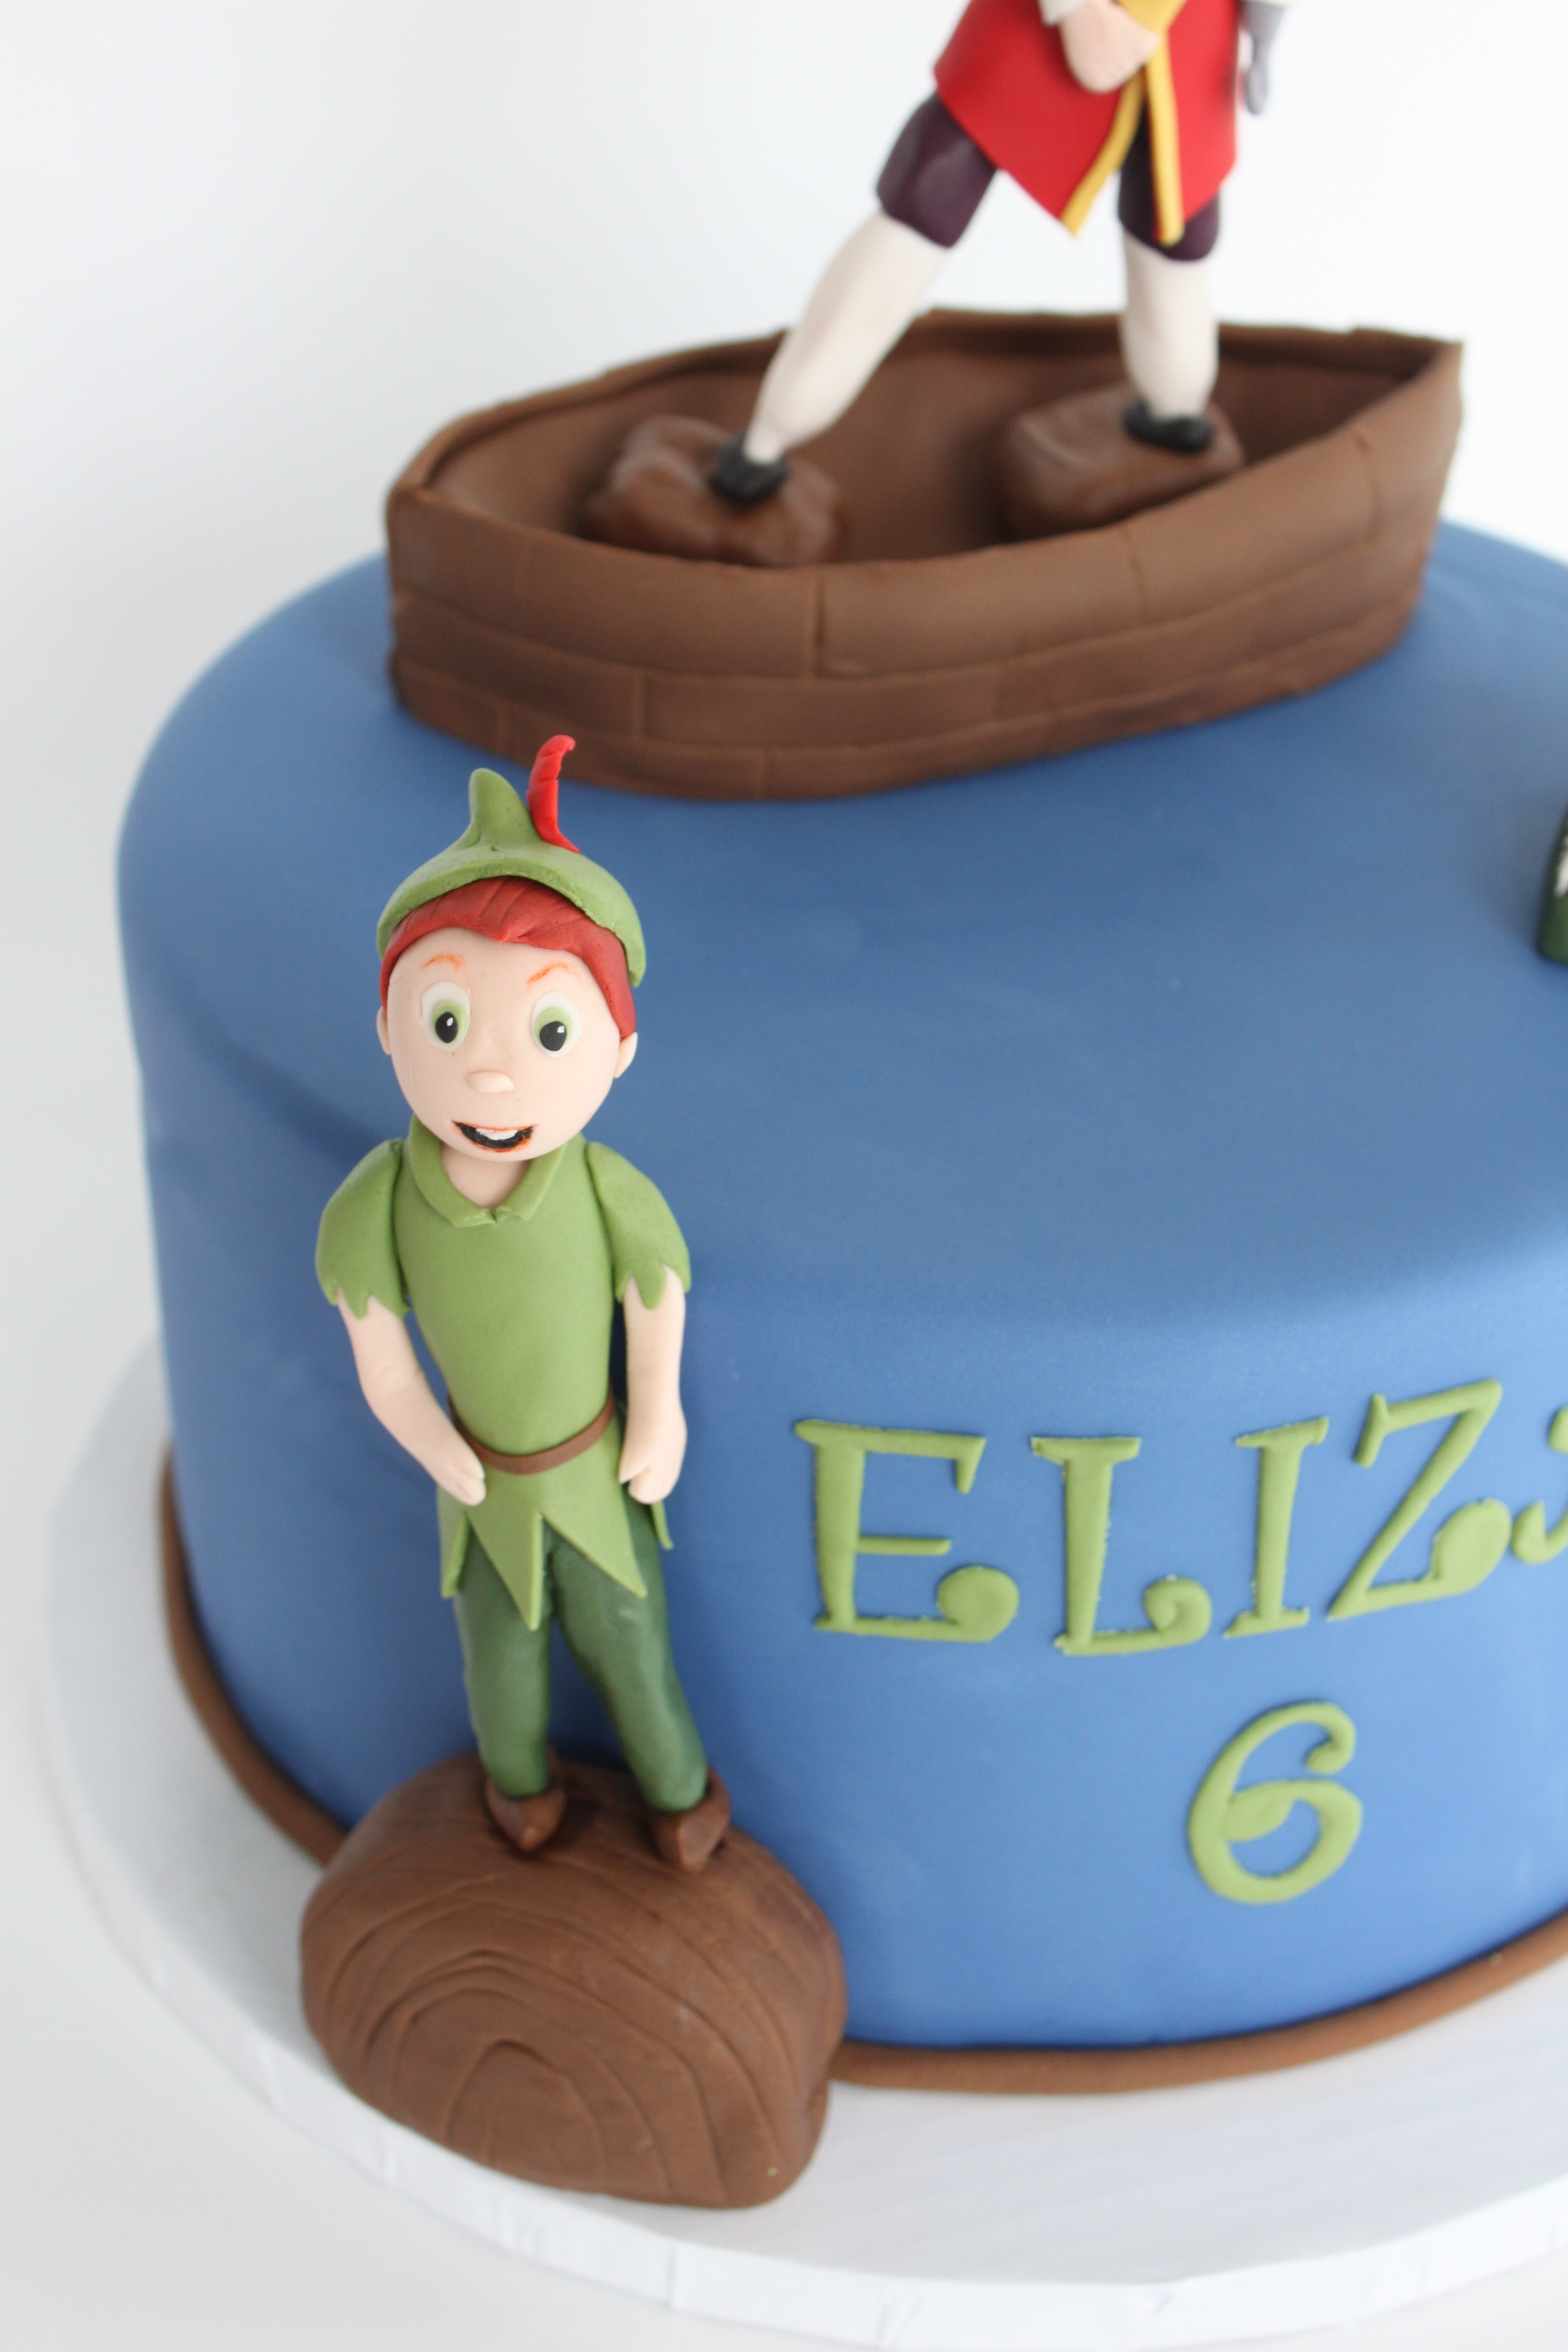 Peter Pan cake topper 8591.jpg